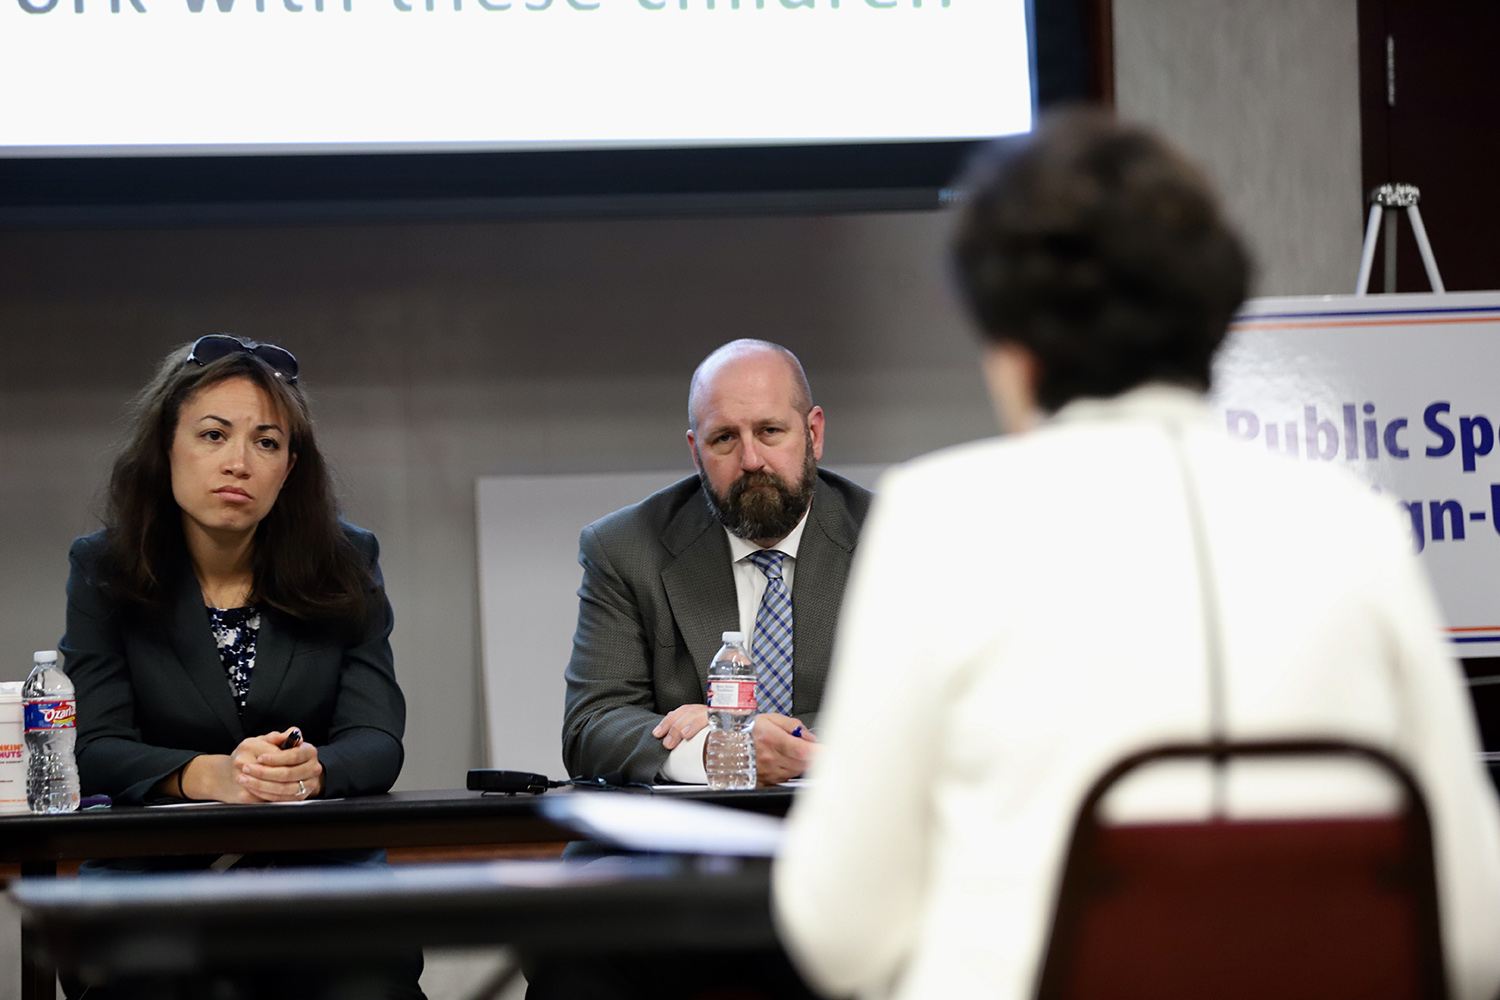 Texas Education officials Penny Schwinn and Justin Porter listen to testimony at a hearing on special education in Richardson on April 16, 2018.